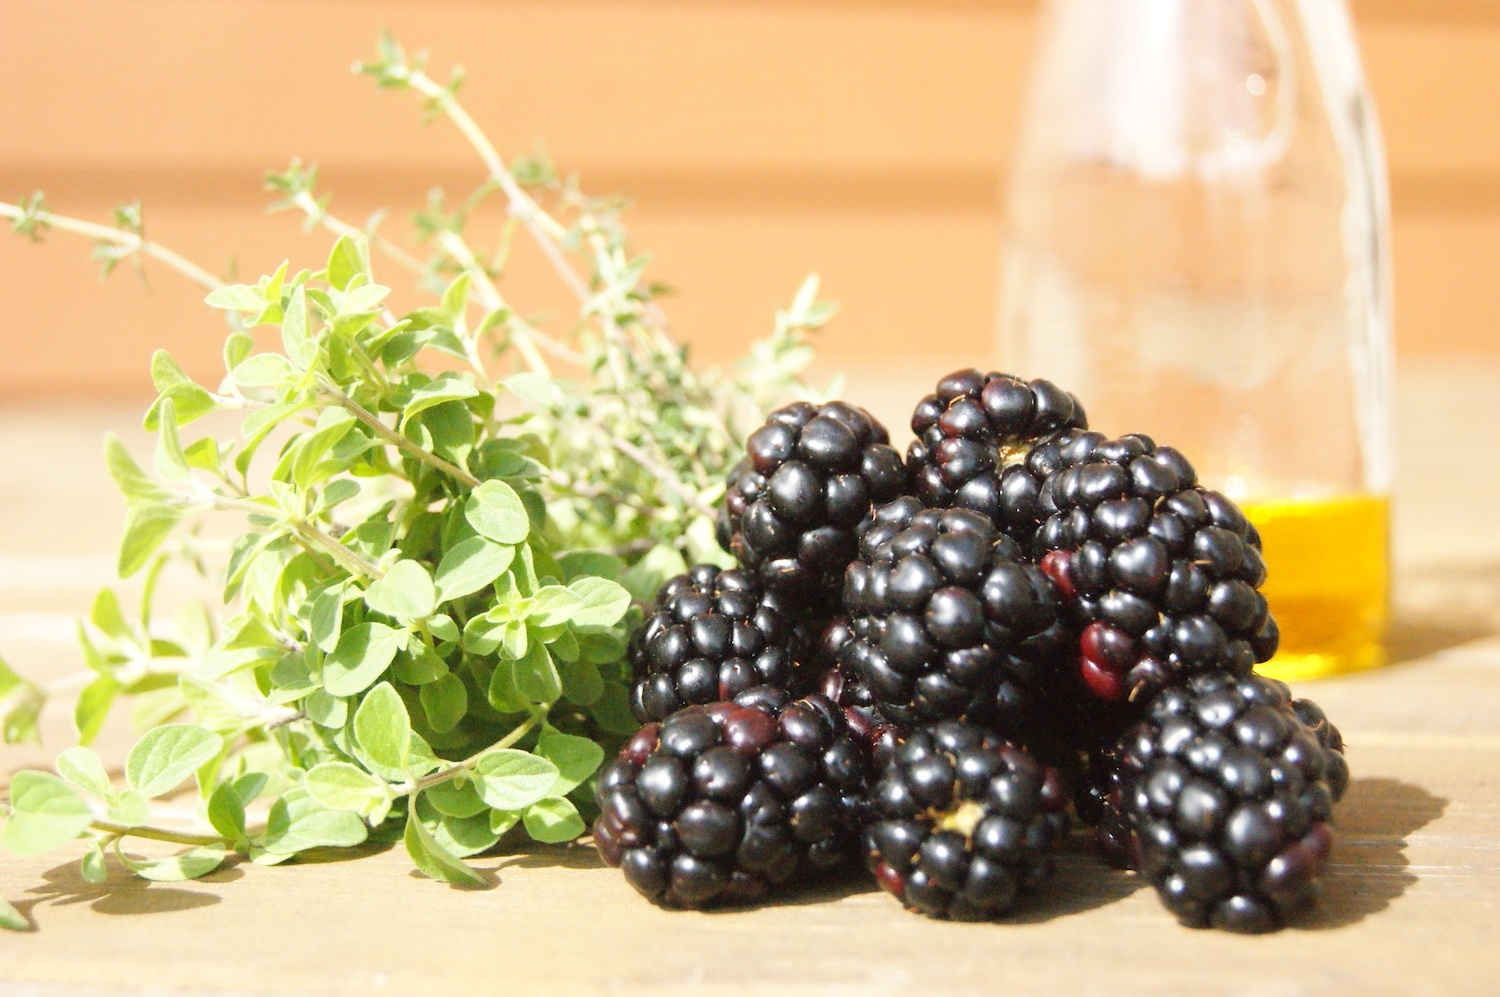 Vinaigrette de mûres et fines herbes / Blackberries and fresh herbs dressing